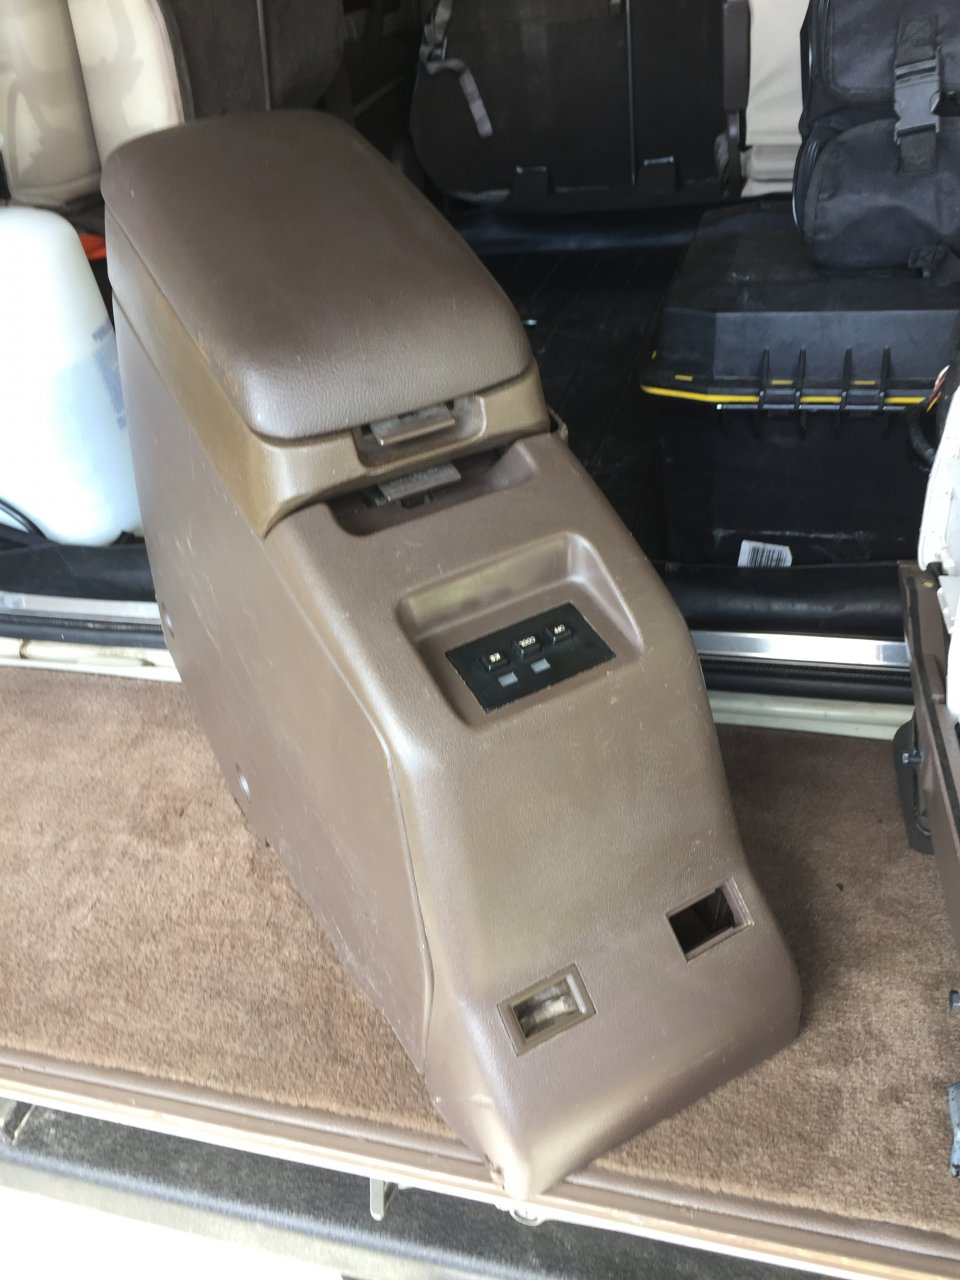 Used Car Parts For Sale >> For Sale - Center console Fridge | IH8MUD Forum